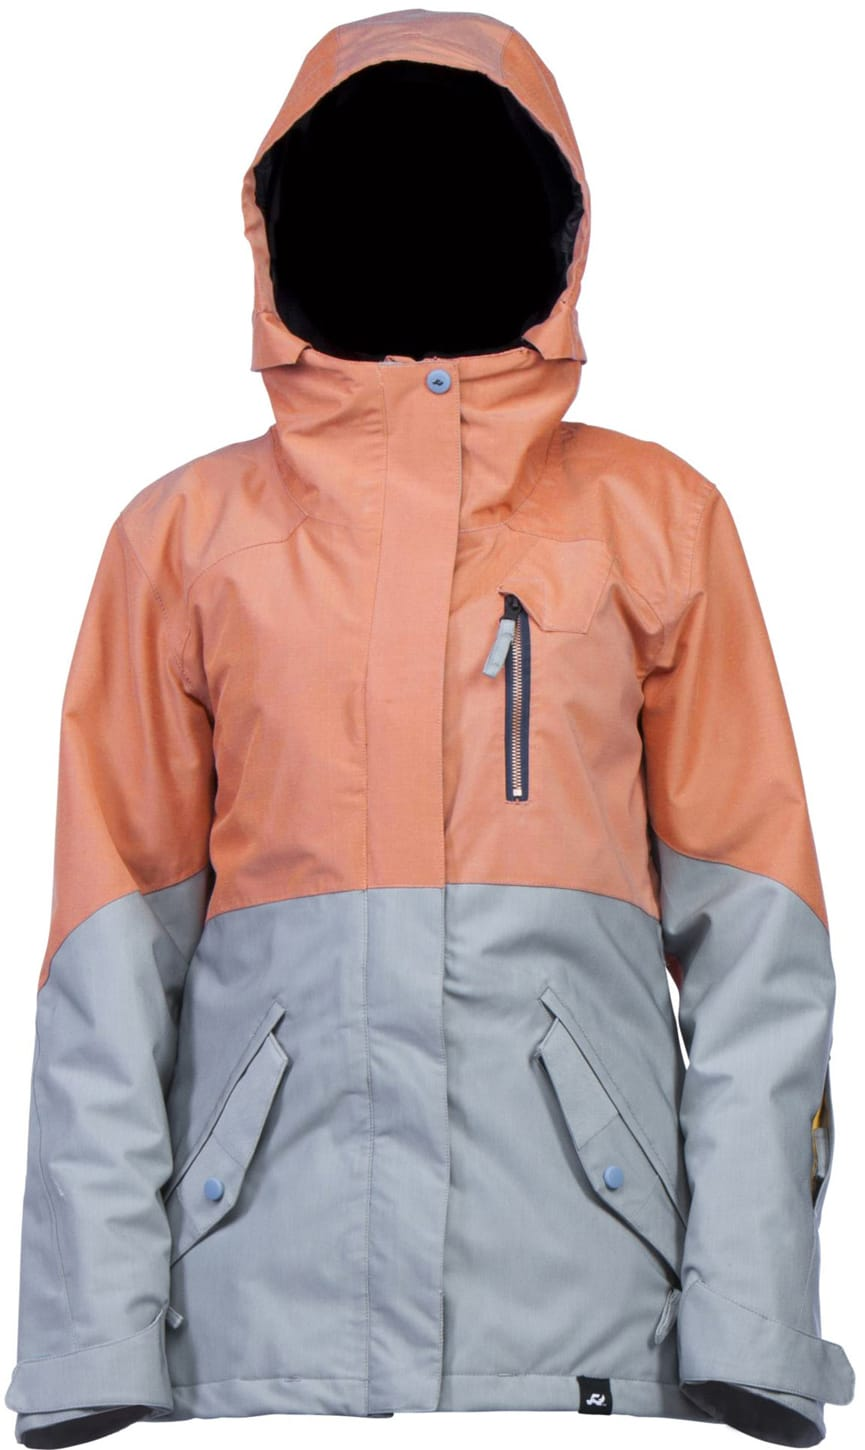 01b171ff4422 Ride Magnolia Insulated Snowboard Jacket - thumbnail 1